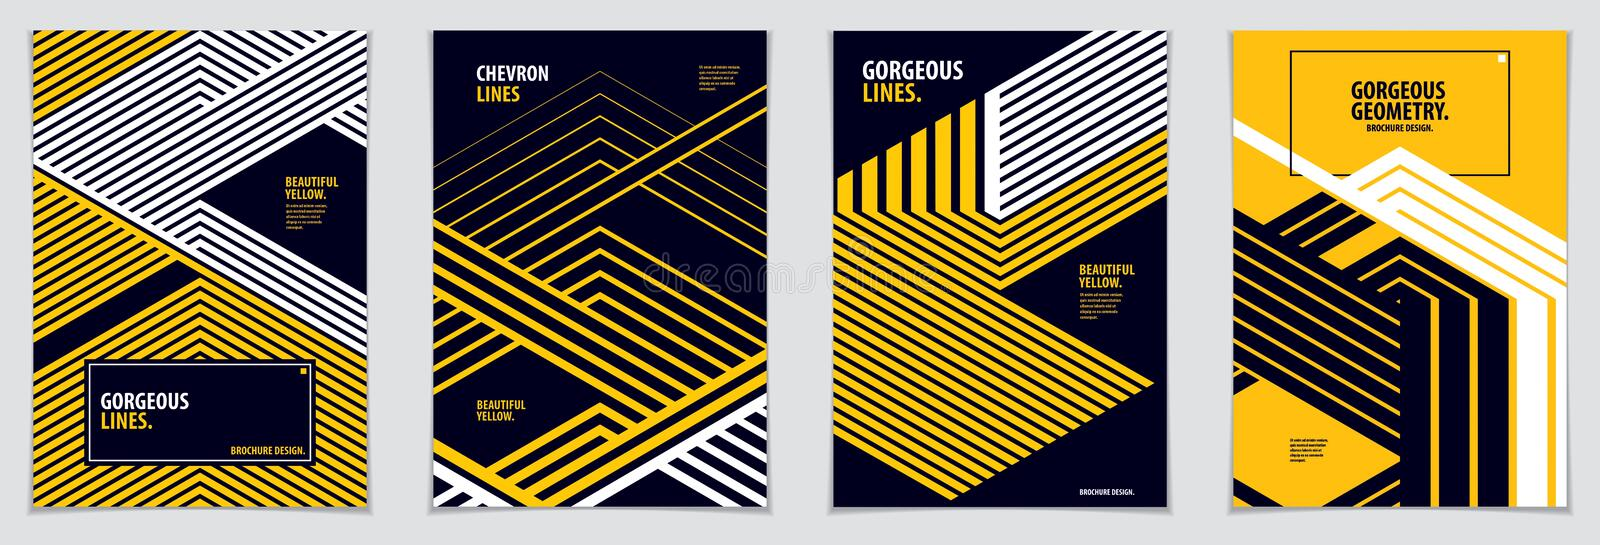 Minimal covers design. Vector set geometric patterns abstract ba royalty free illustration